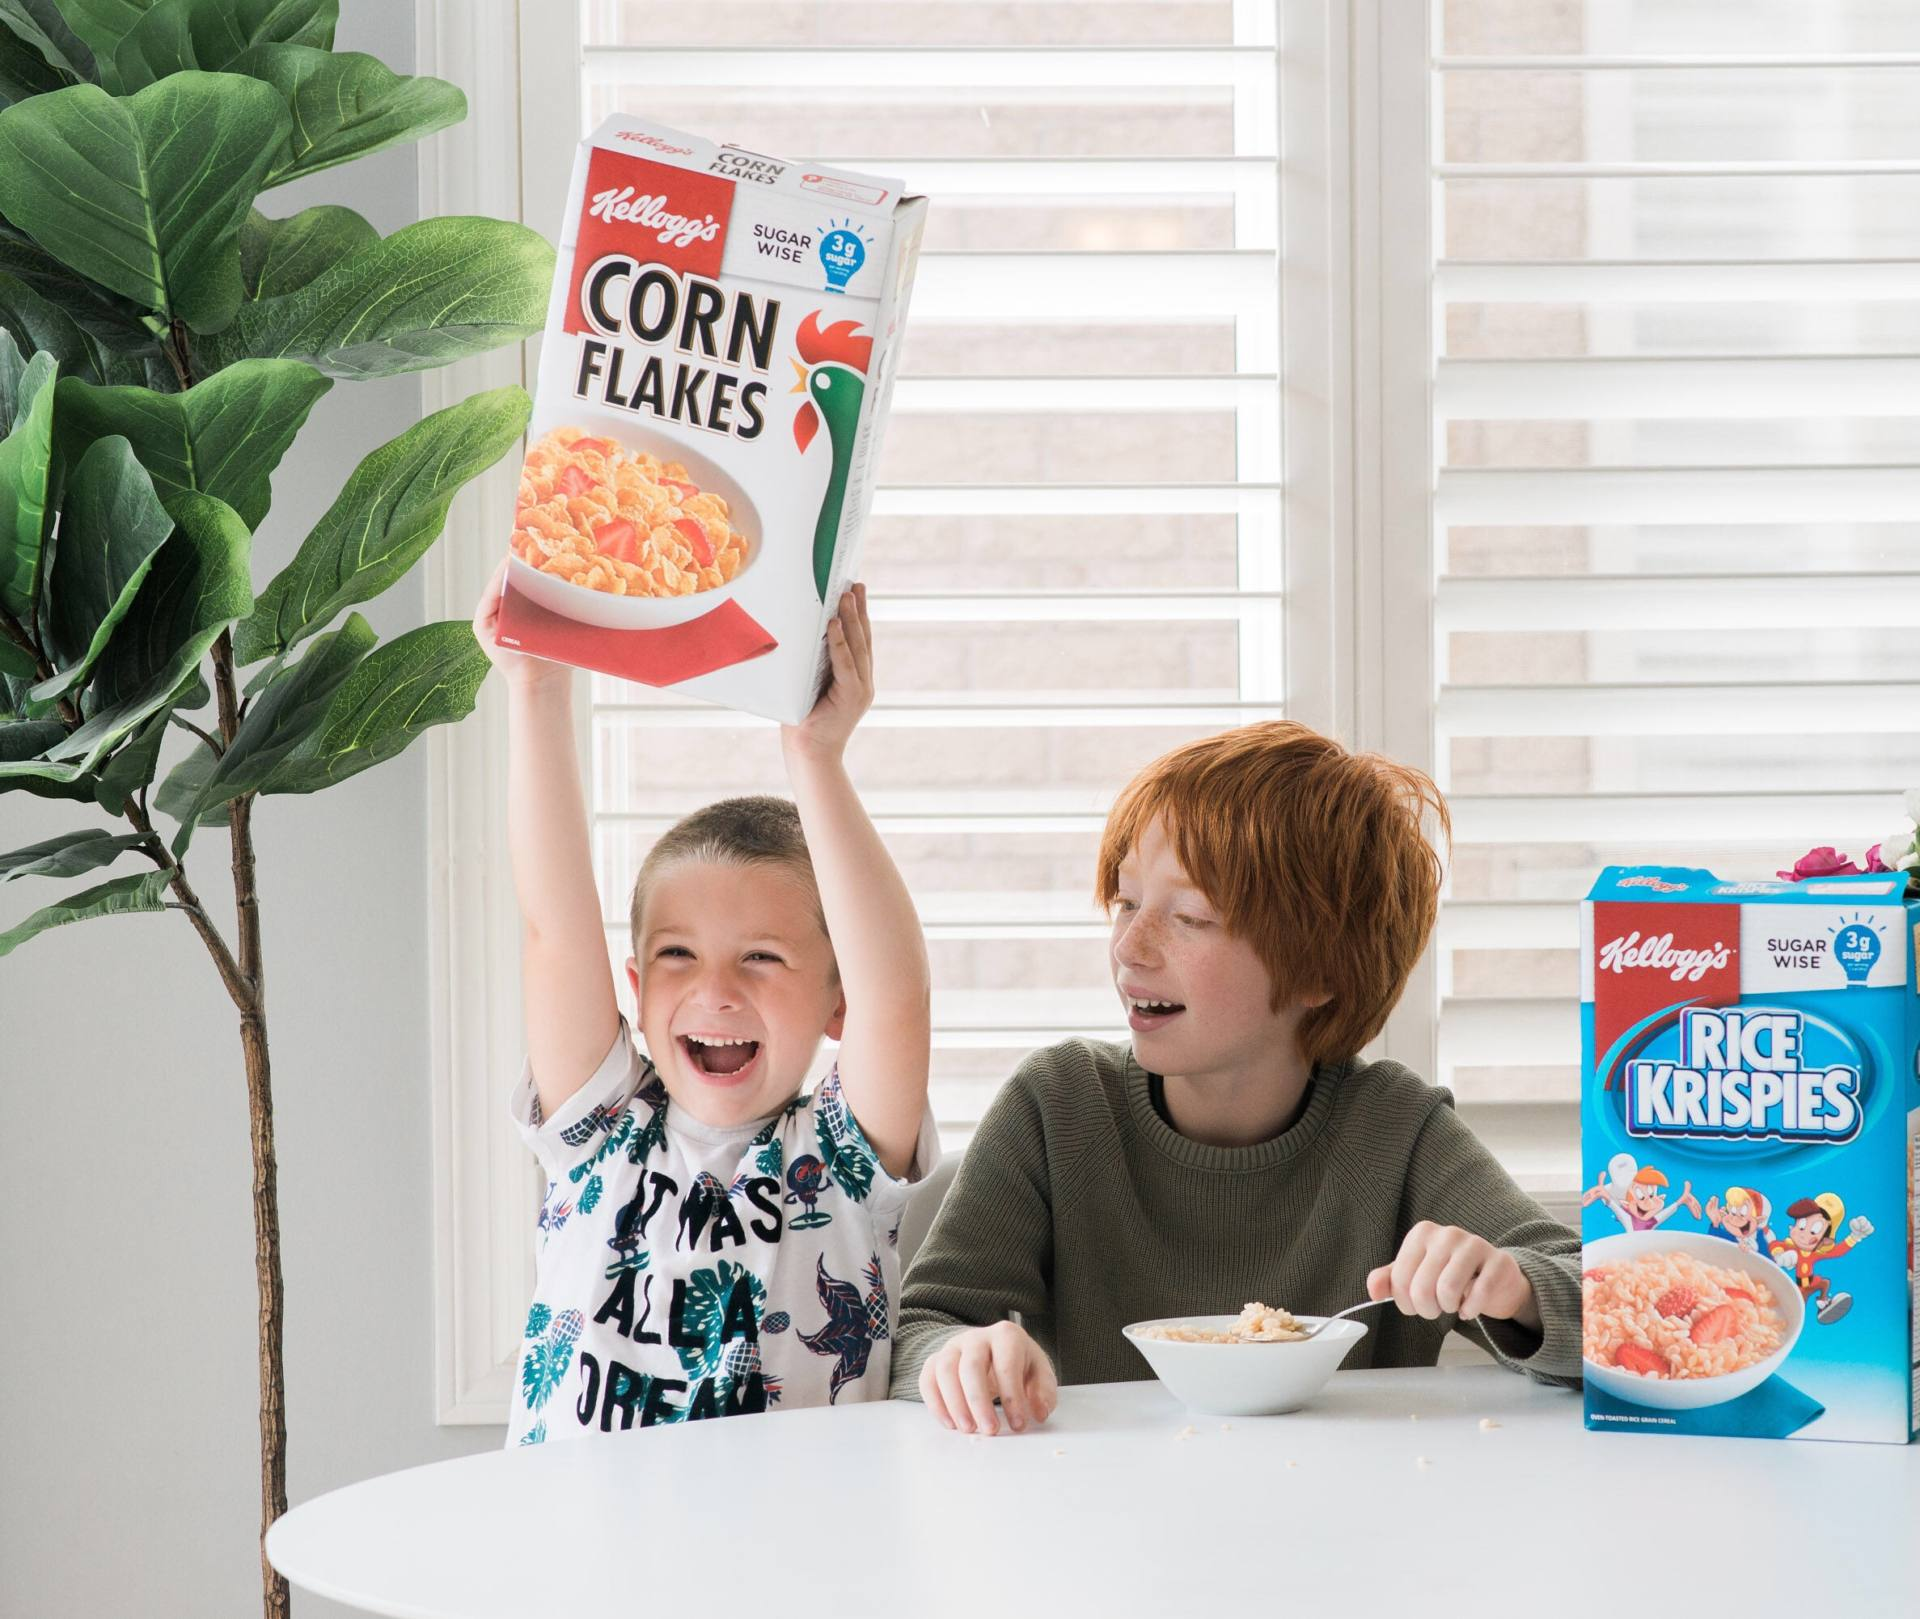 Easy Breakfast Ideas You Can Feel Good About Feeding To Your Kids #SugarWise #KelloggPartner